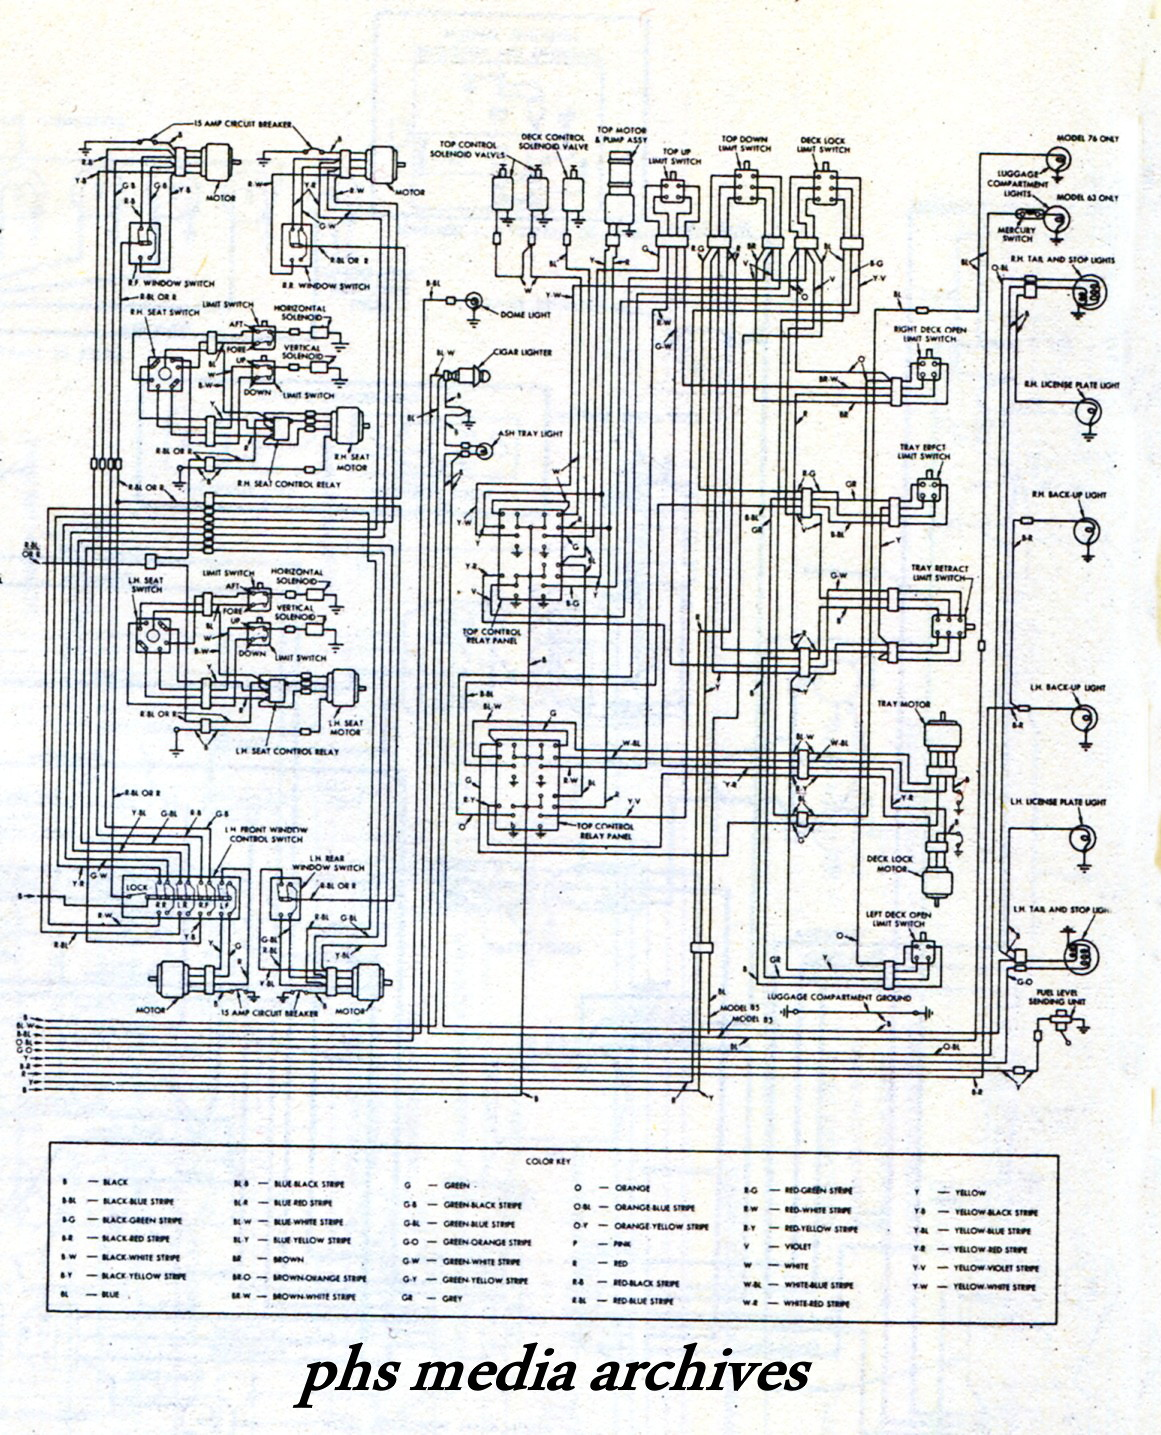 the rear half of 1961 63 t bird wiring diagram clic on image for enlargement  [ 1161 x 1435 Pixel ]